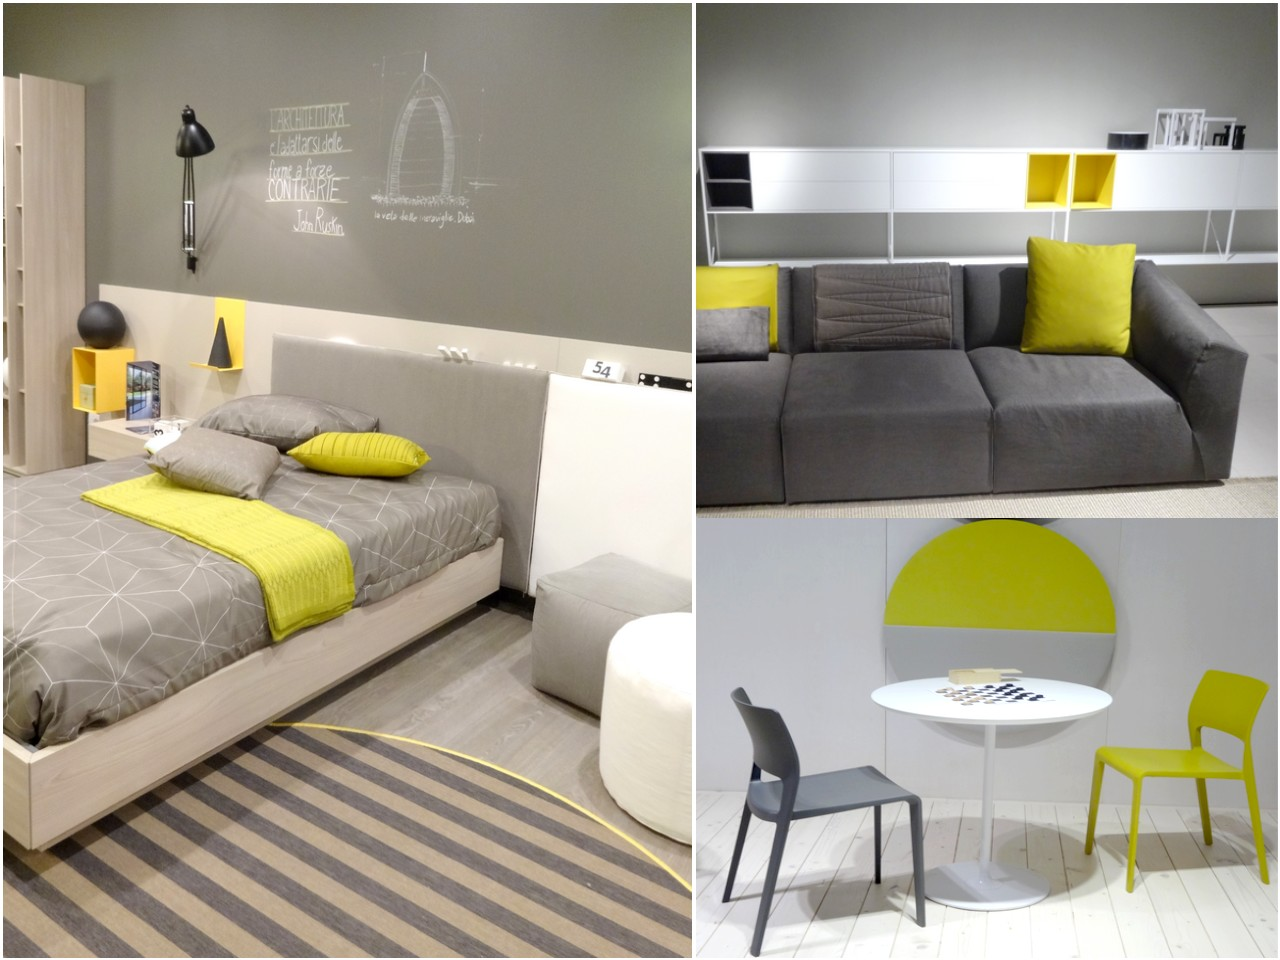 Tendencias decoraci n 2015 2016 mil n siempre sorprende - Tendencias en colores para interiores 2015 ...